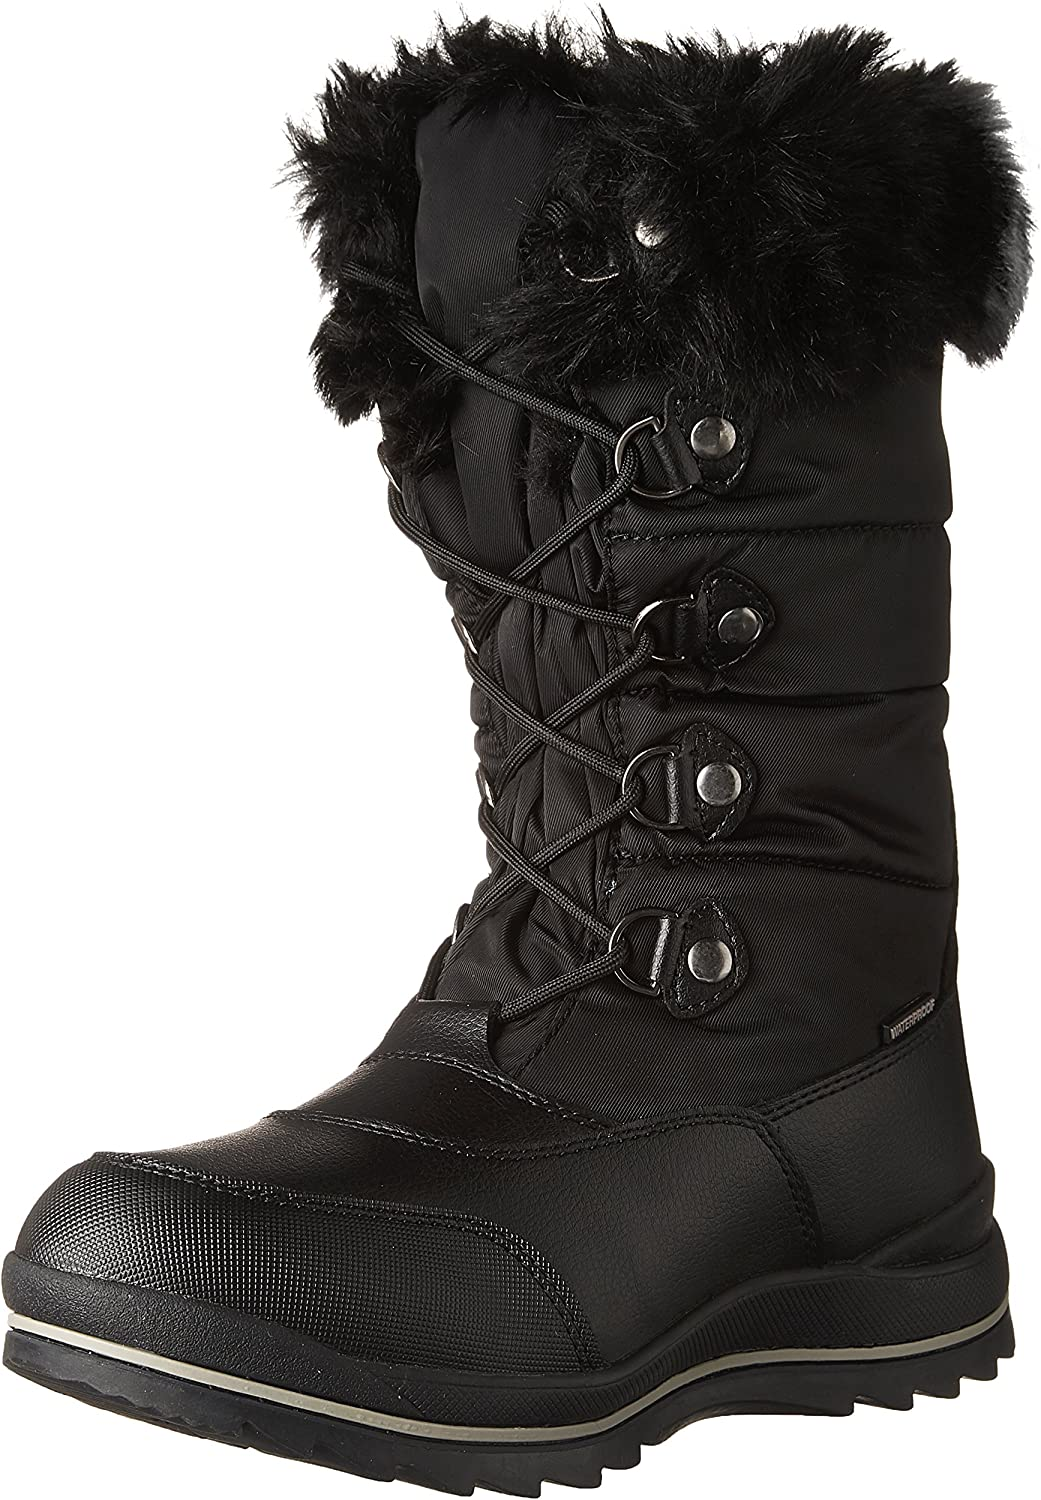 Steve Madden Women's Creston Snow Boots